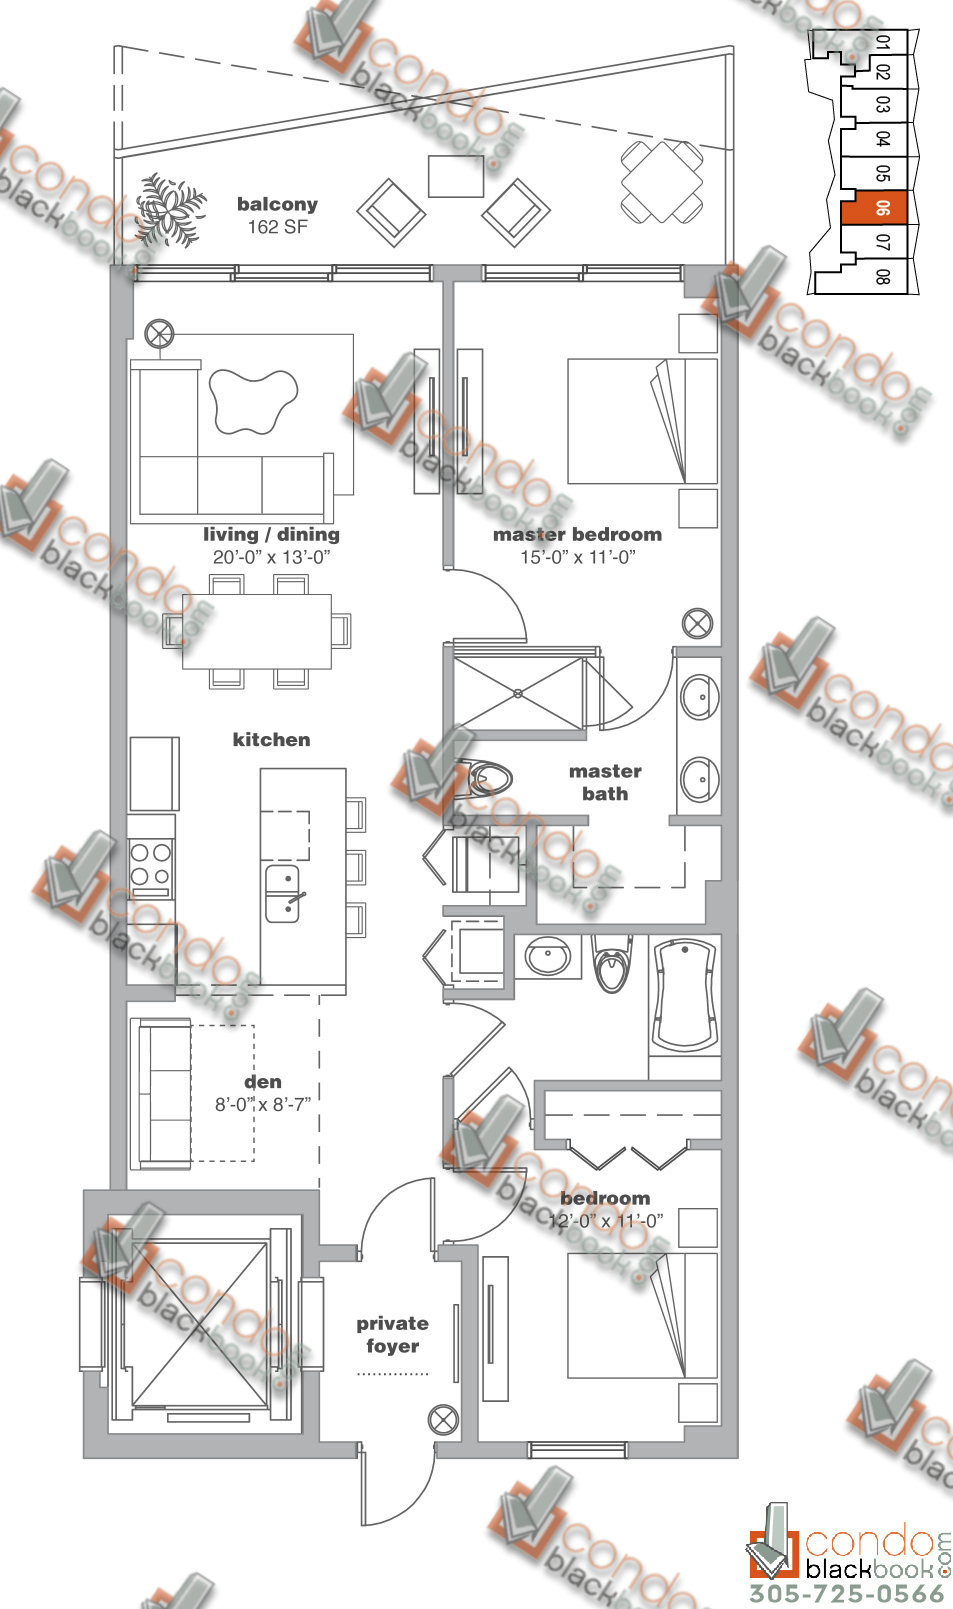 Floor plan for Icon Bay Edgewater Miami, model 06, line 06, 2/2+Den bedrooms, 1,300 sq ft